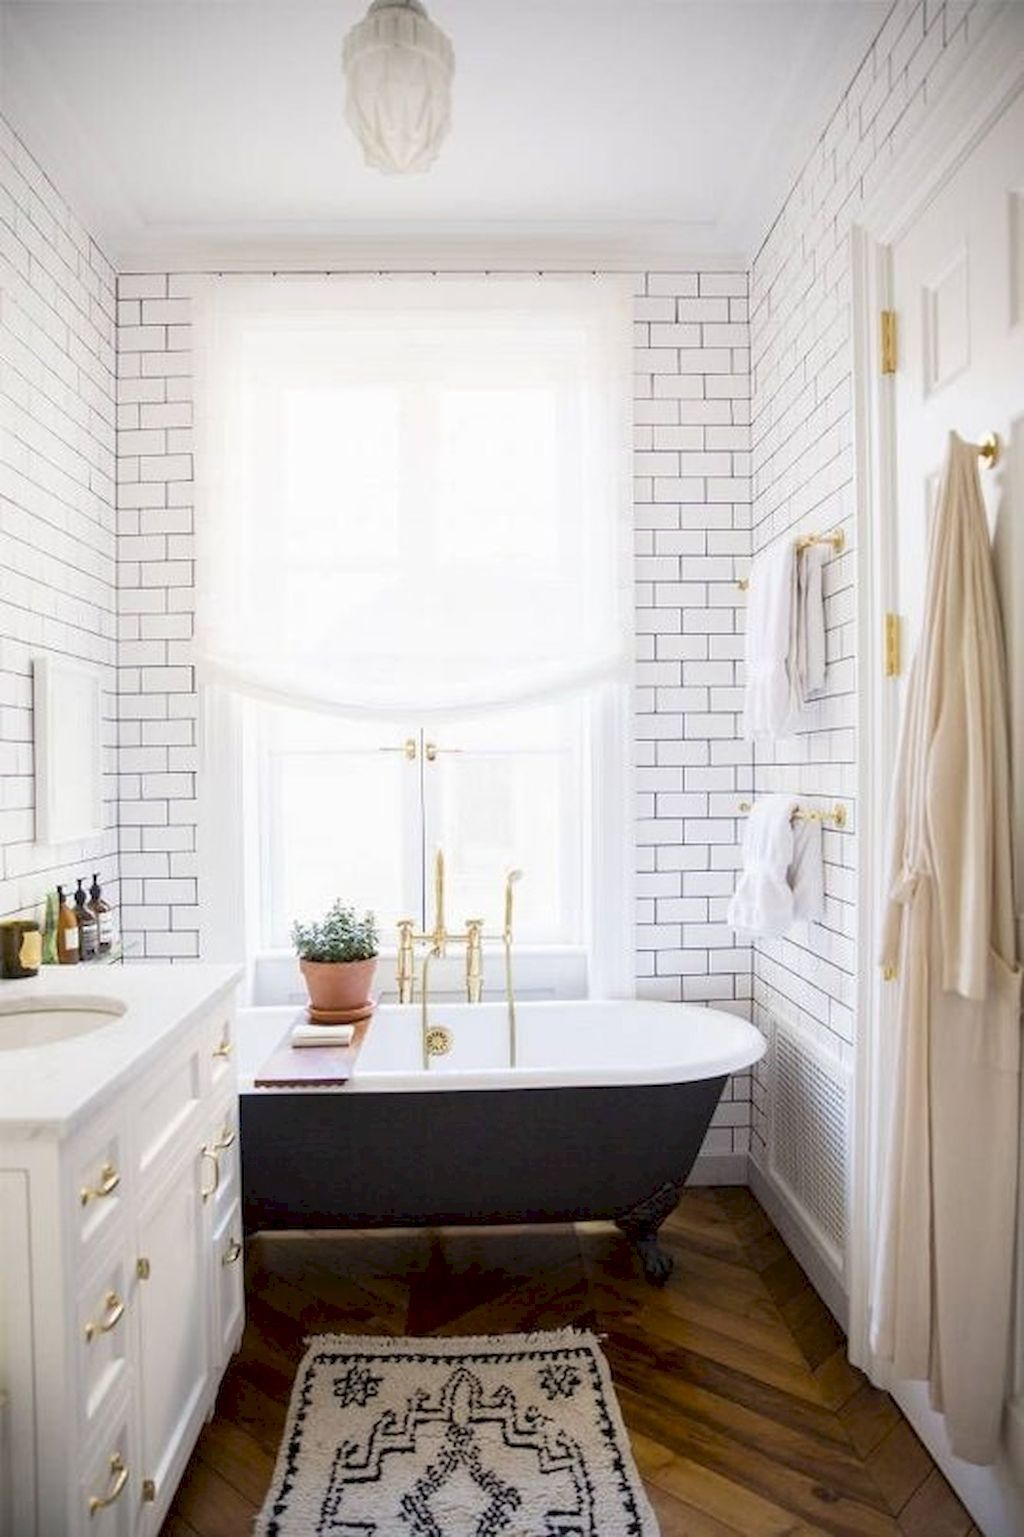 70 Small Bathroom Ideas Remodel For Apartment | Bathroom trends ...